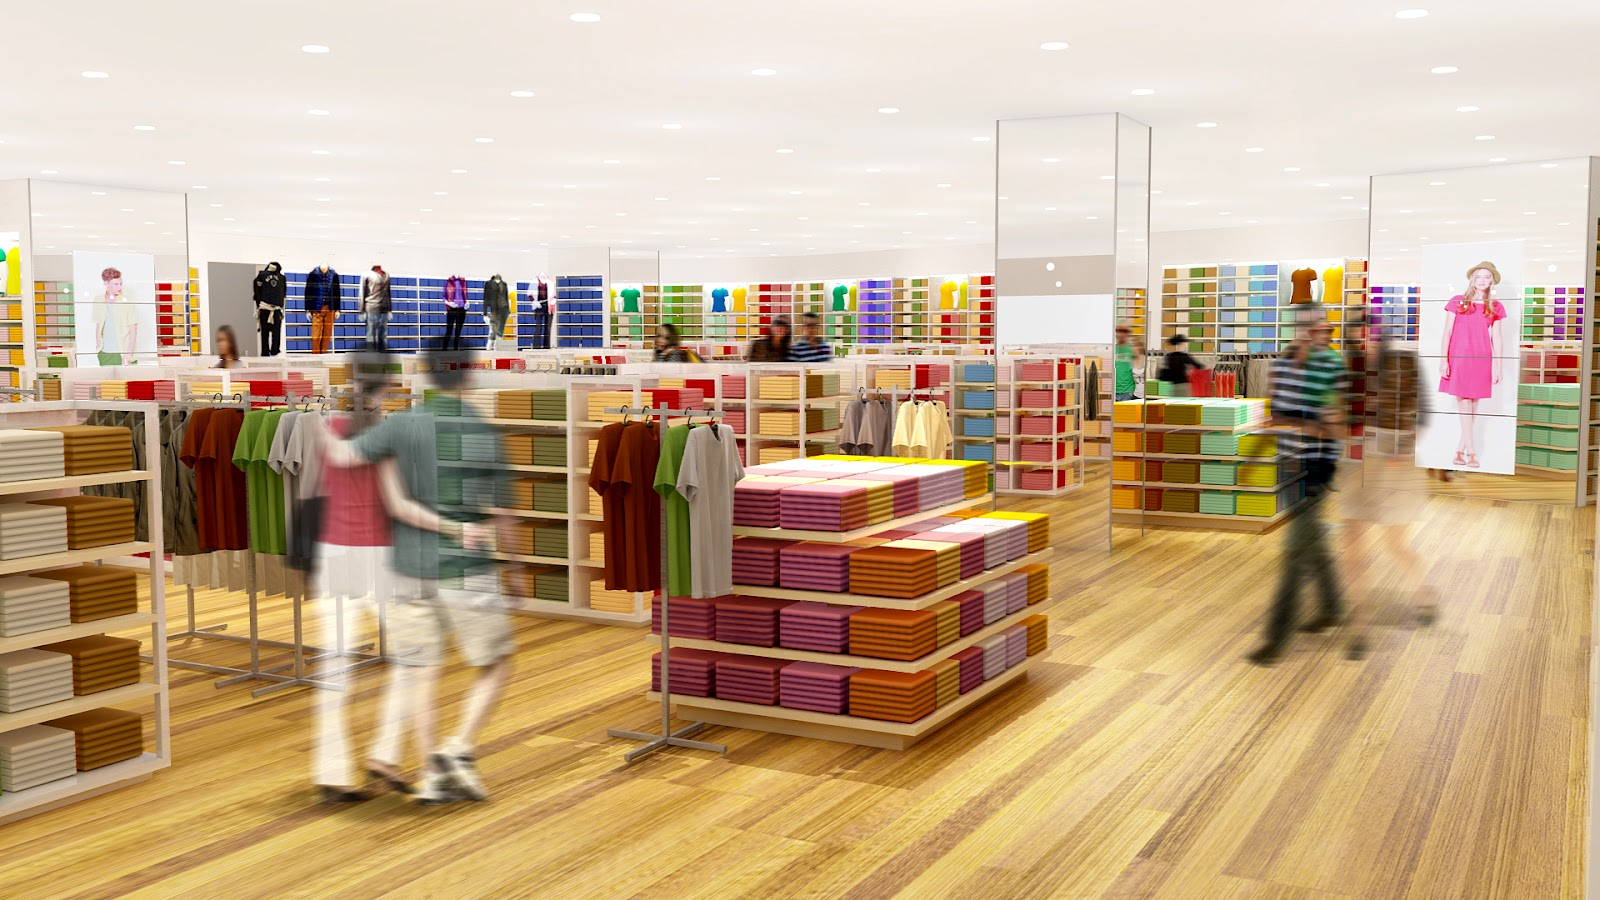 UNIQLO Opens First Retail Store In the Philippines THE WEB MAGAZINE 1600x900